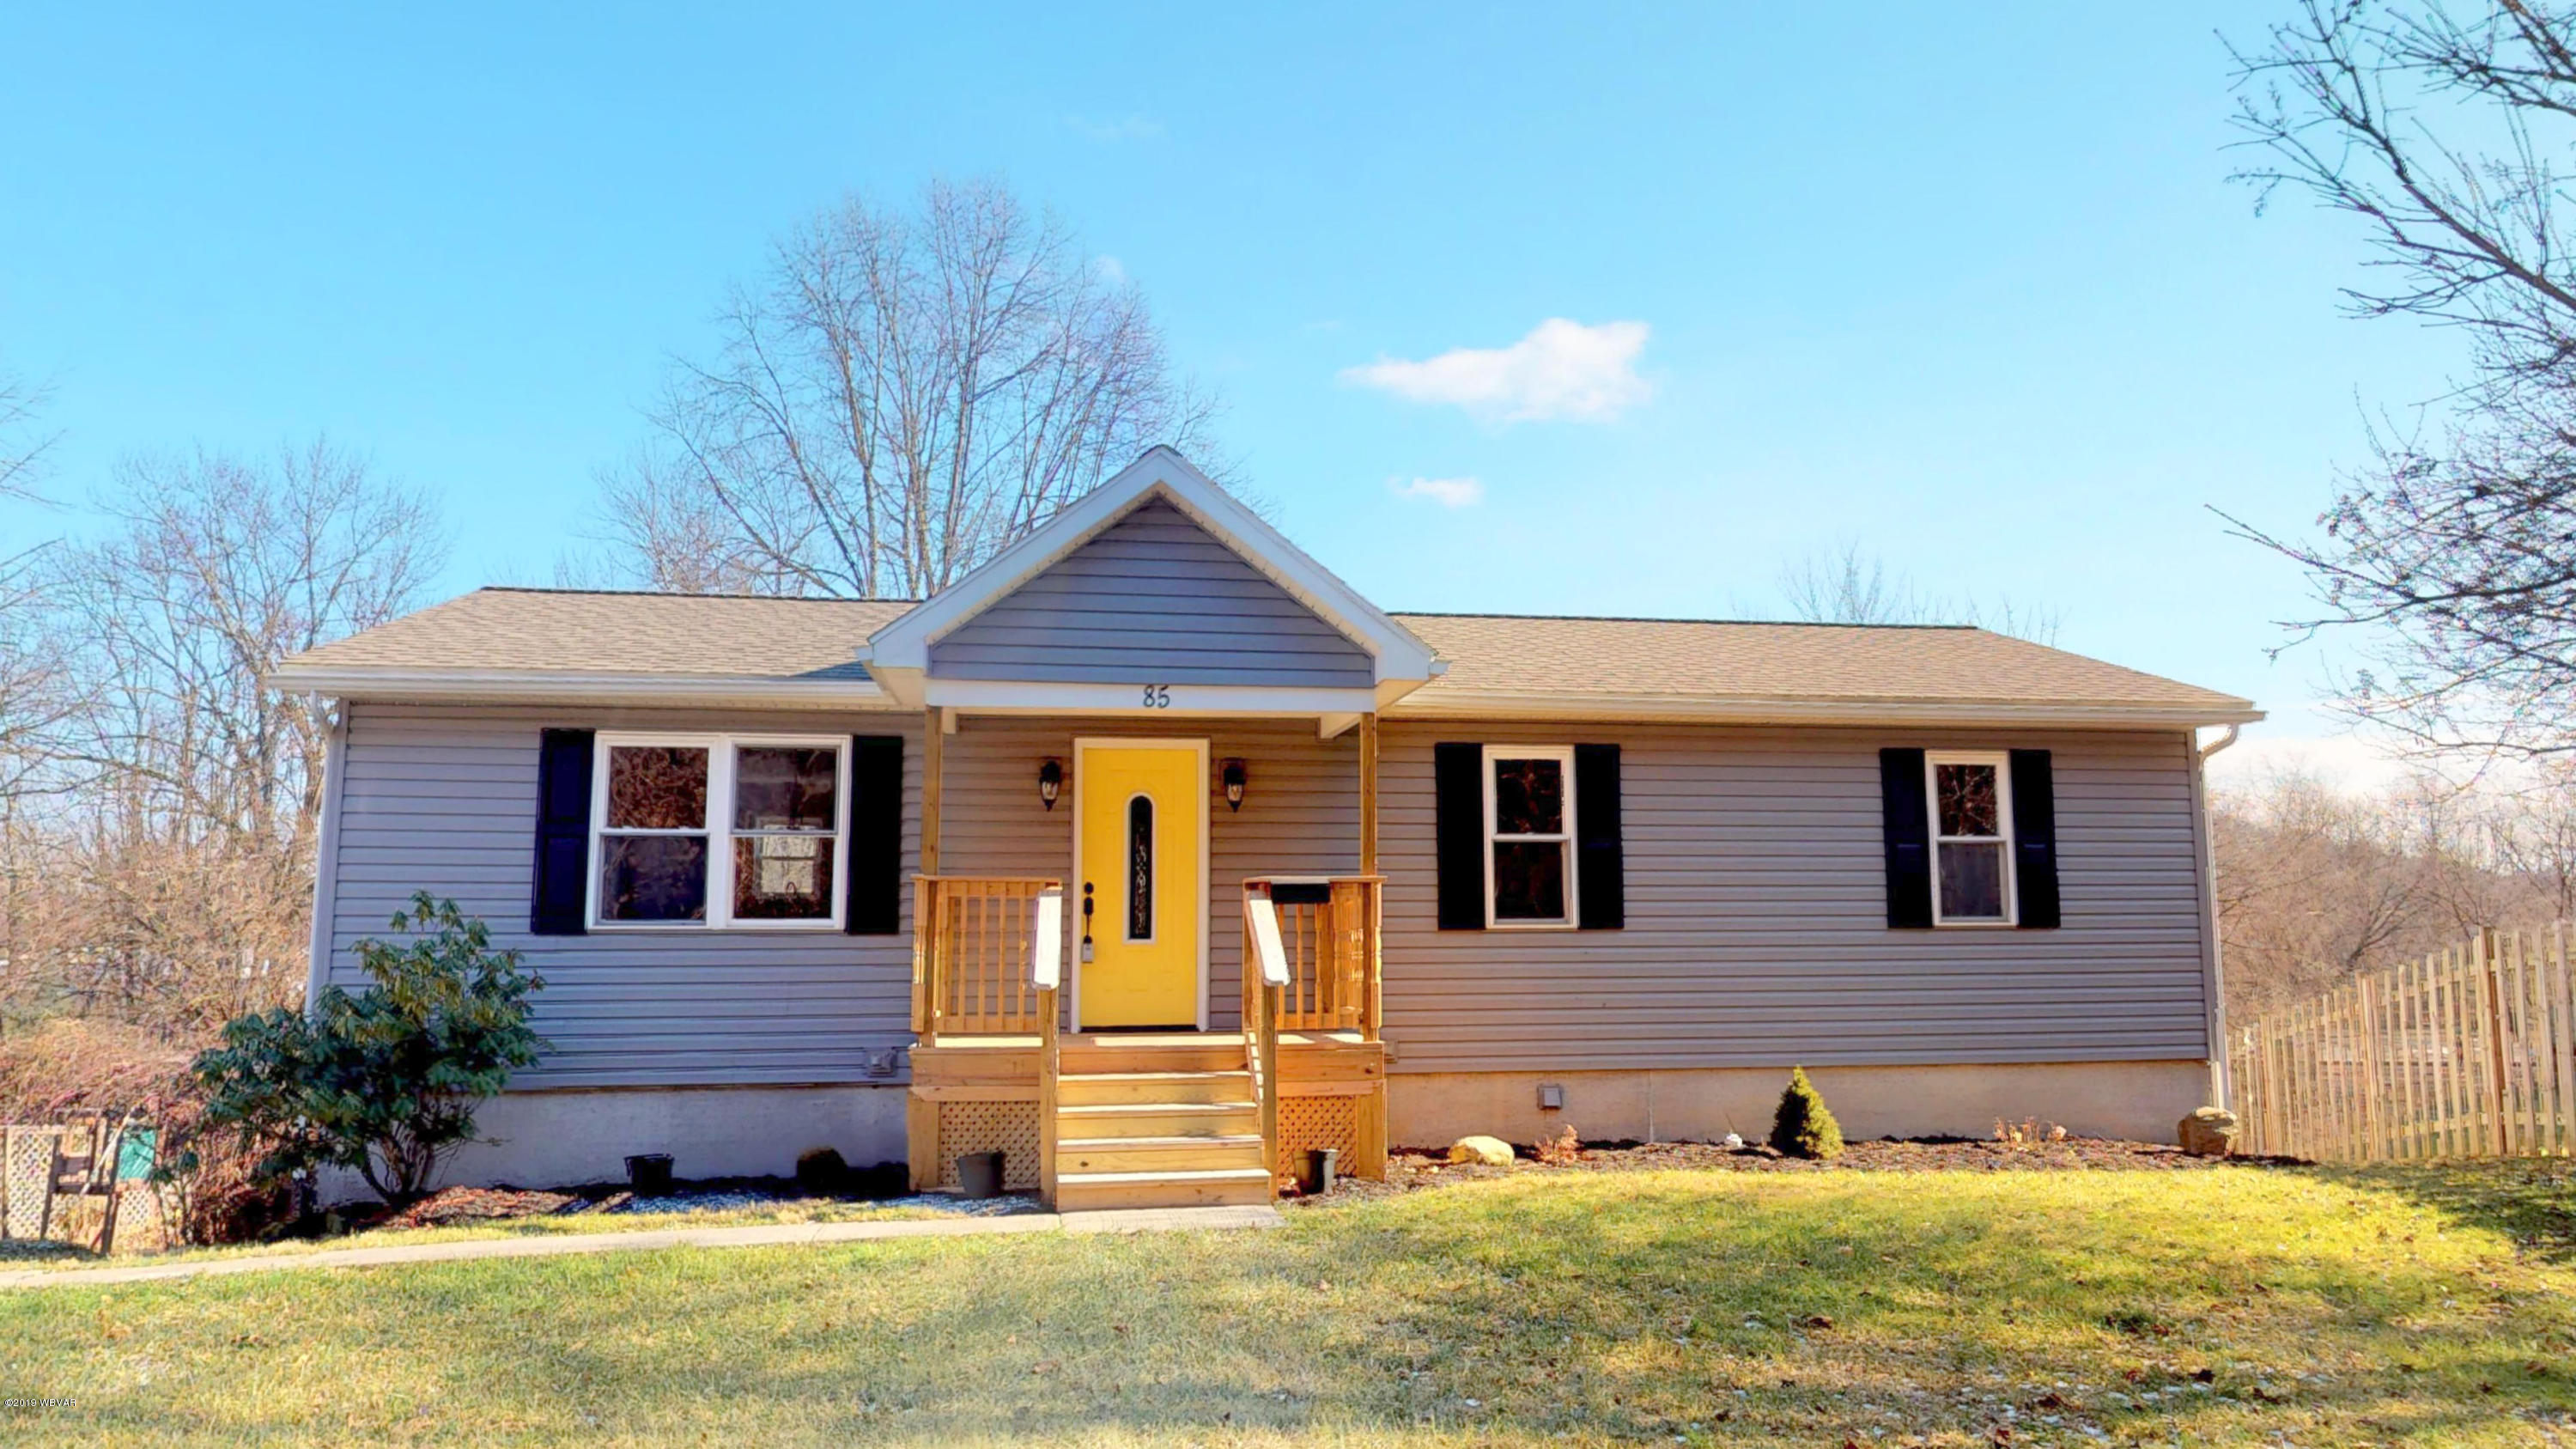 85 JOHNSON STREET,Montgomery,PA 17752,3 Bedrooms Bedrooms,2 BathroomsBathrooms,Residential,JOHNSON,WB-86234